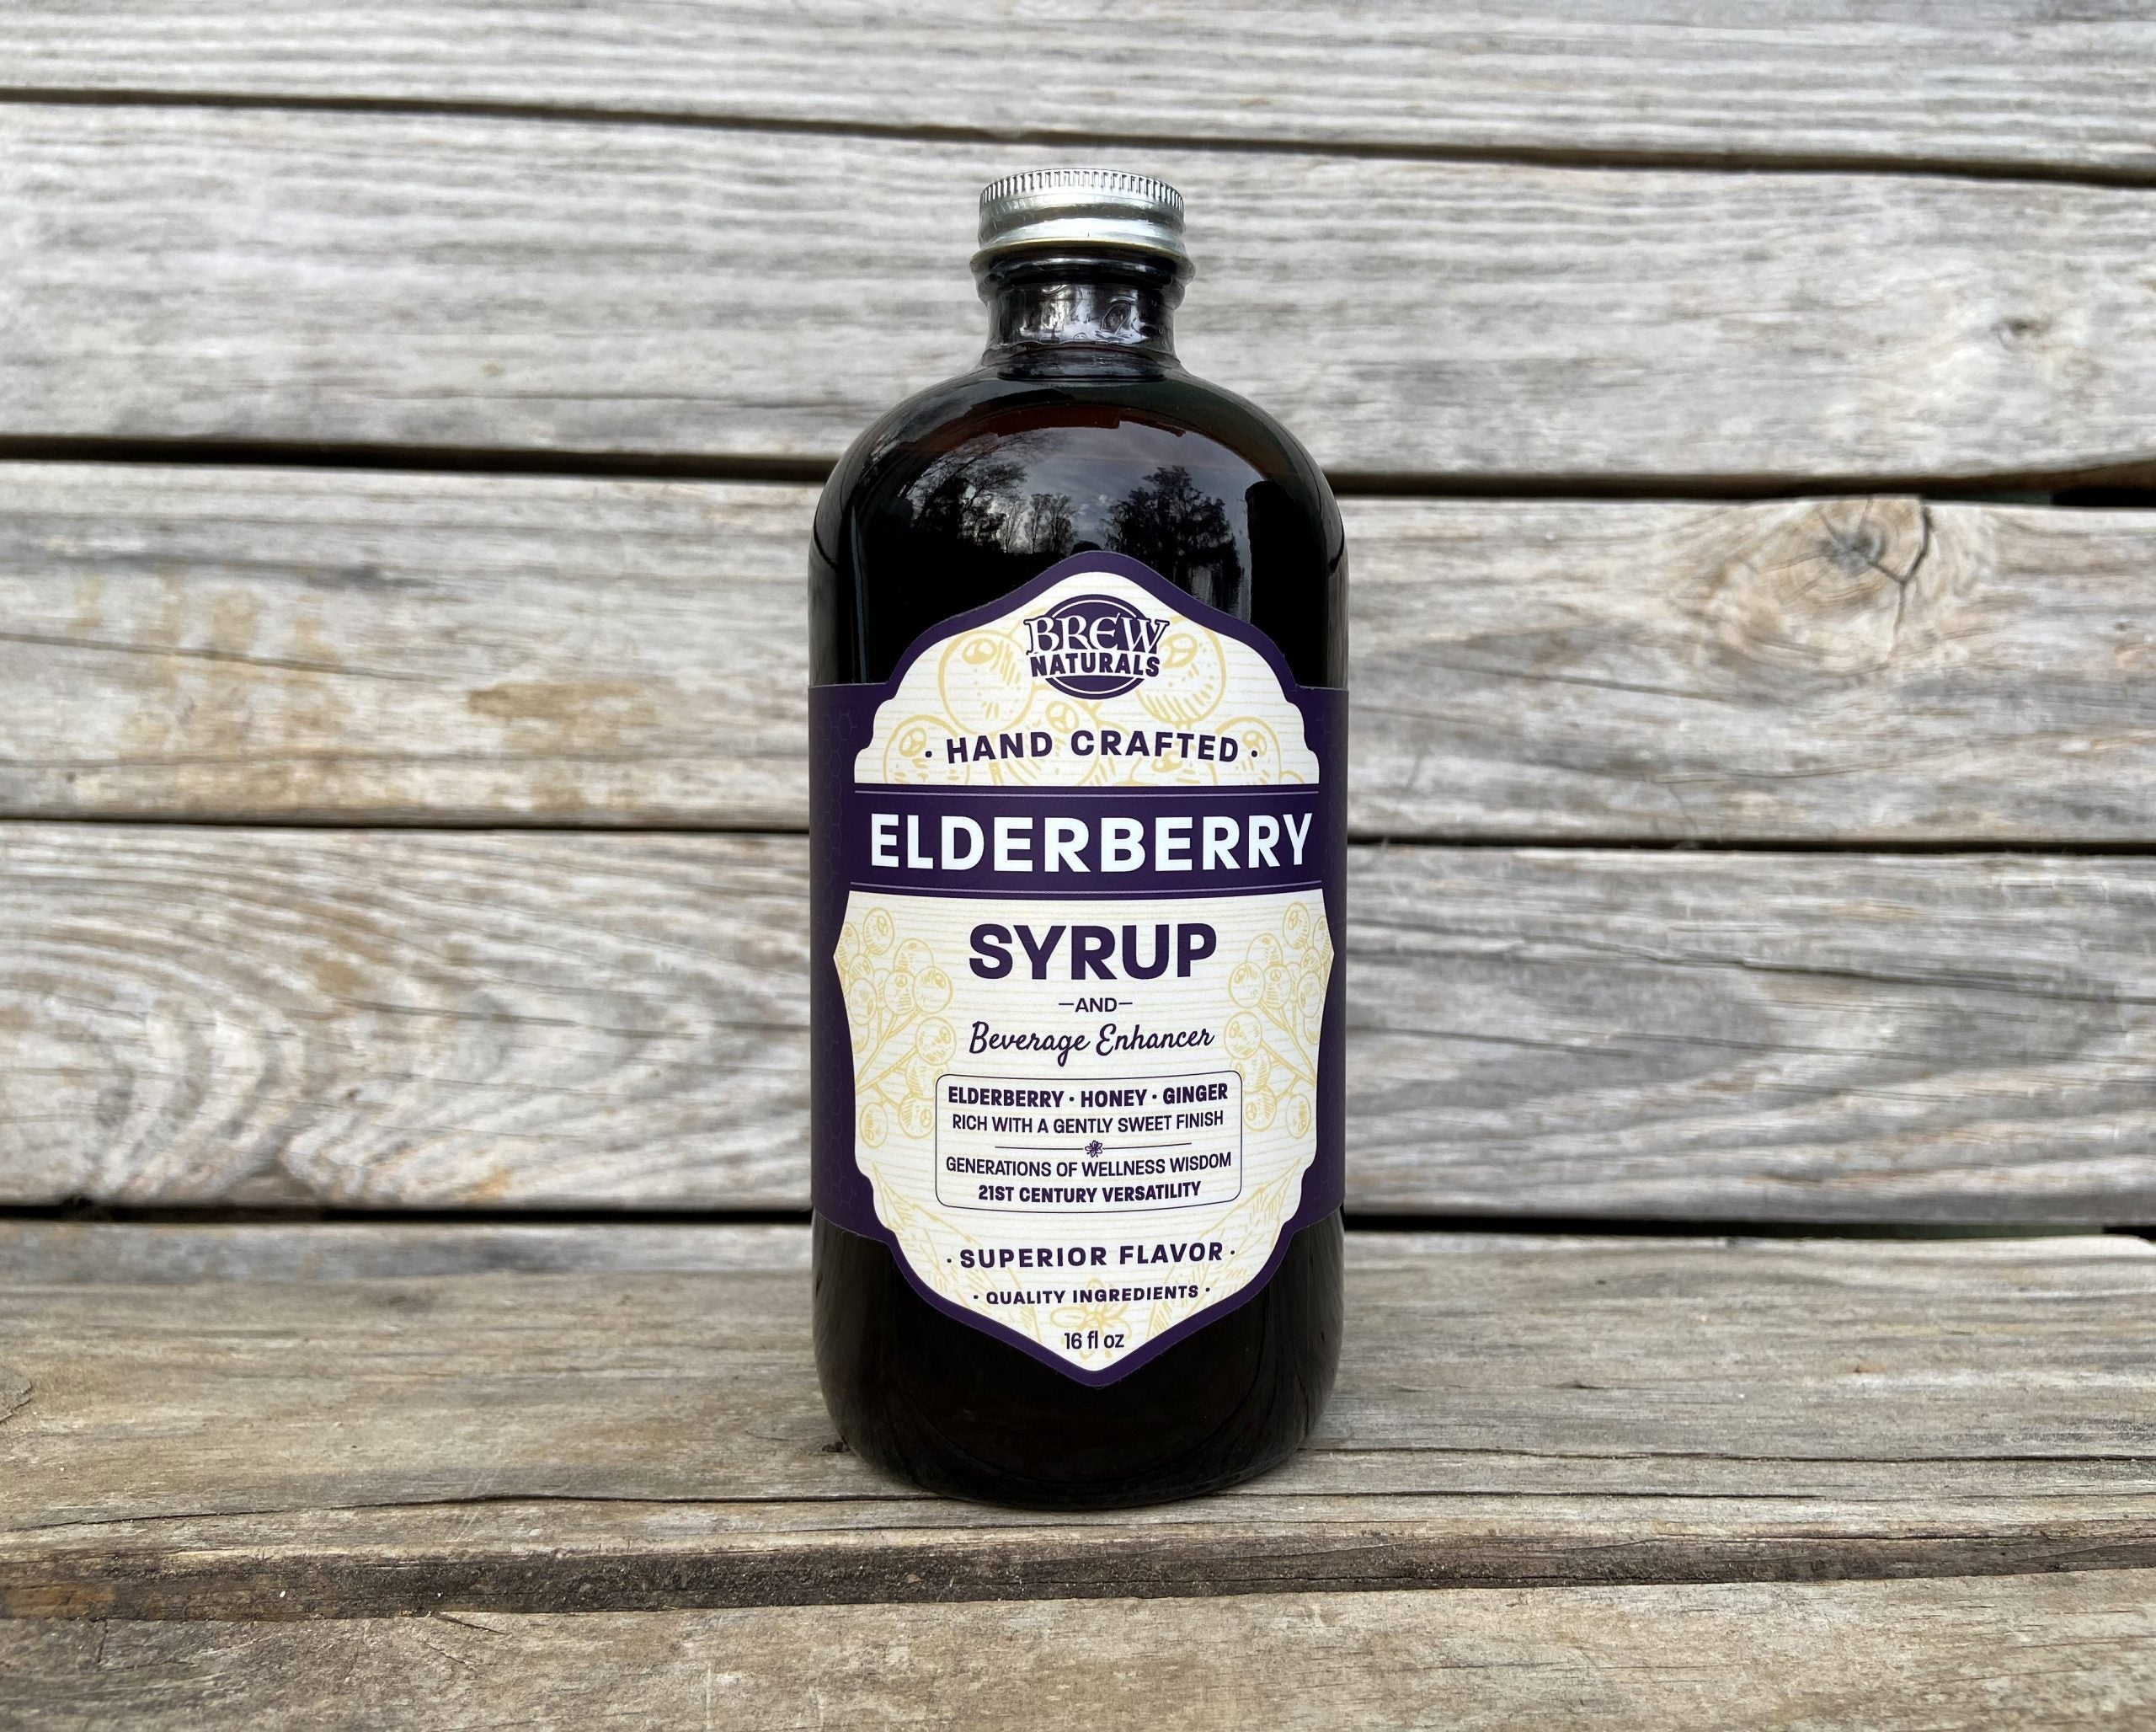 Brew Naturals Elderberry Syrup & Beverage Enhancer - Provisions, LLC